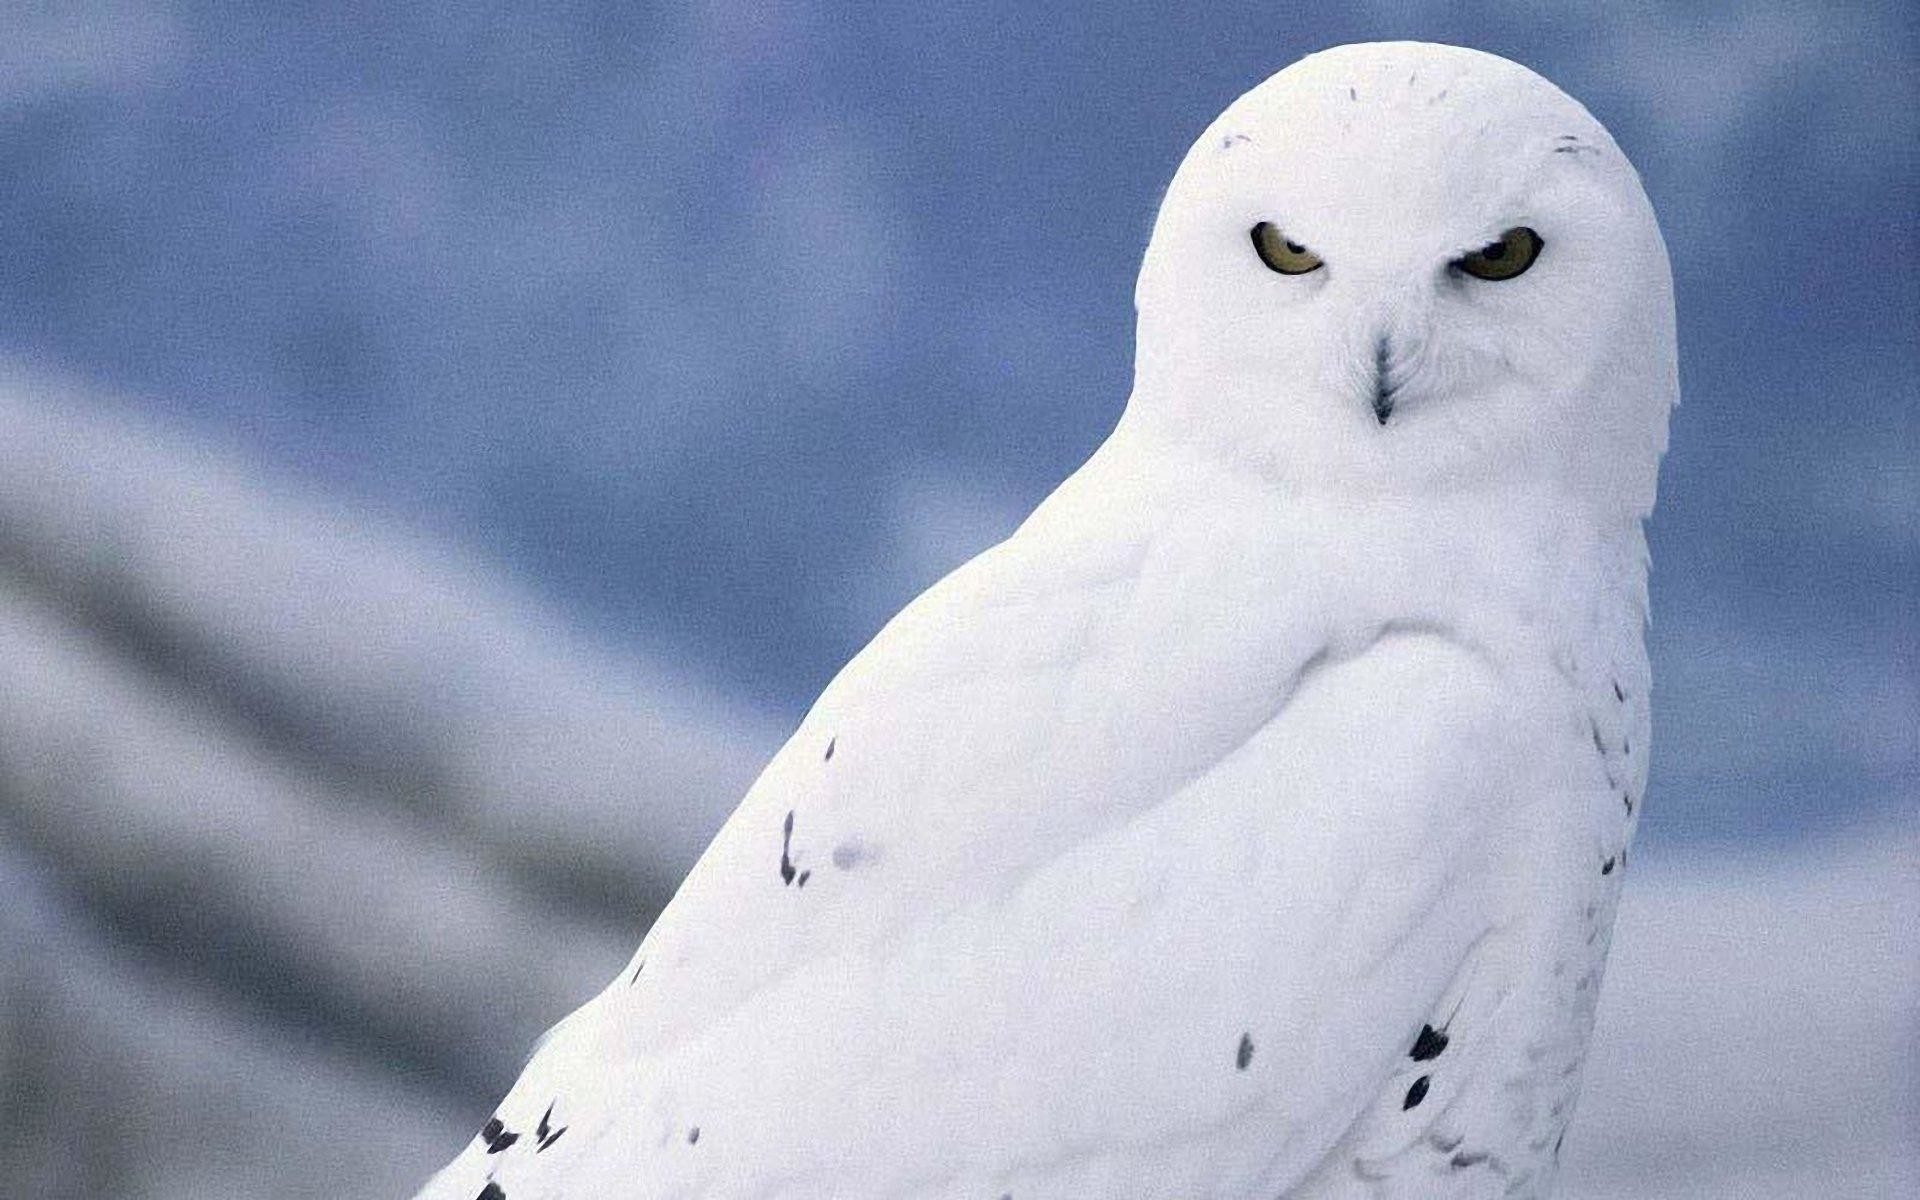 Snowy Owl Bird HD Wallpaper Android Apps on Google Play 1920×1200